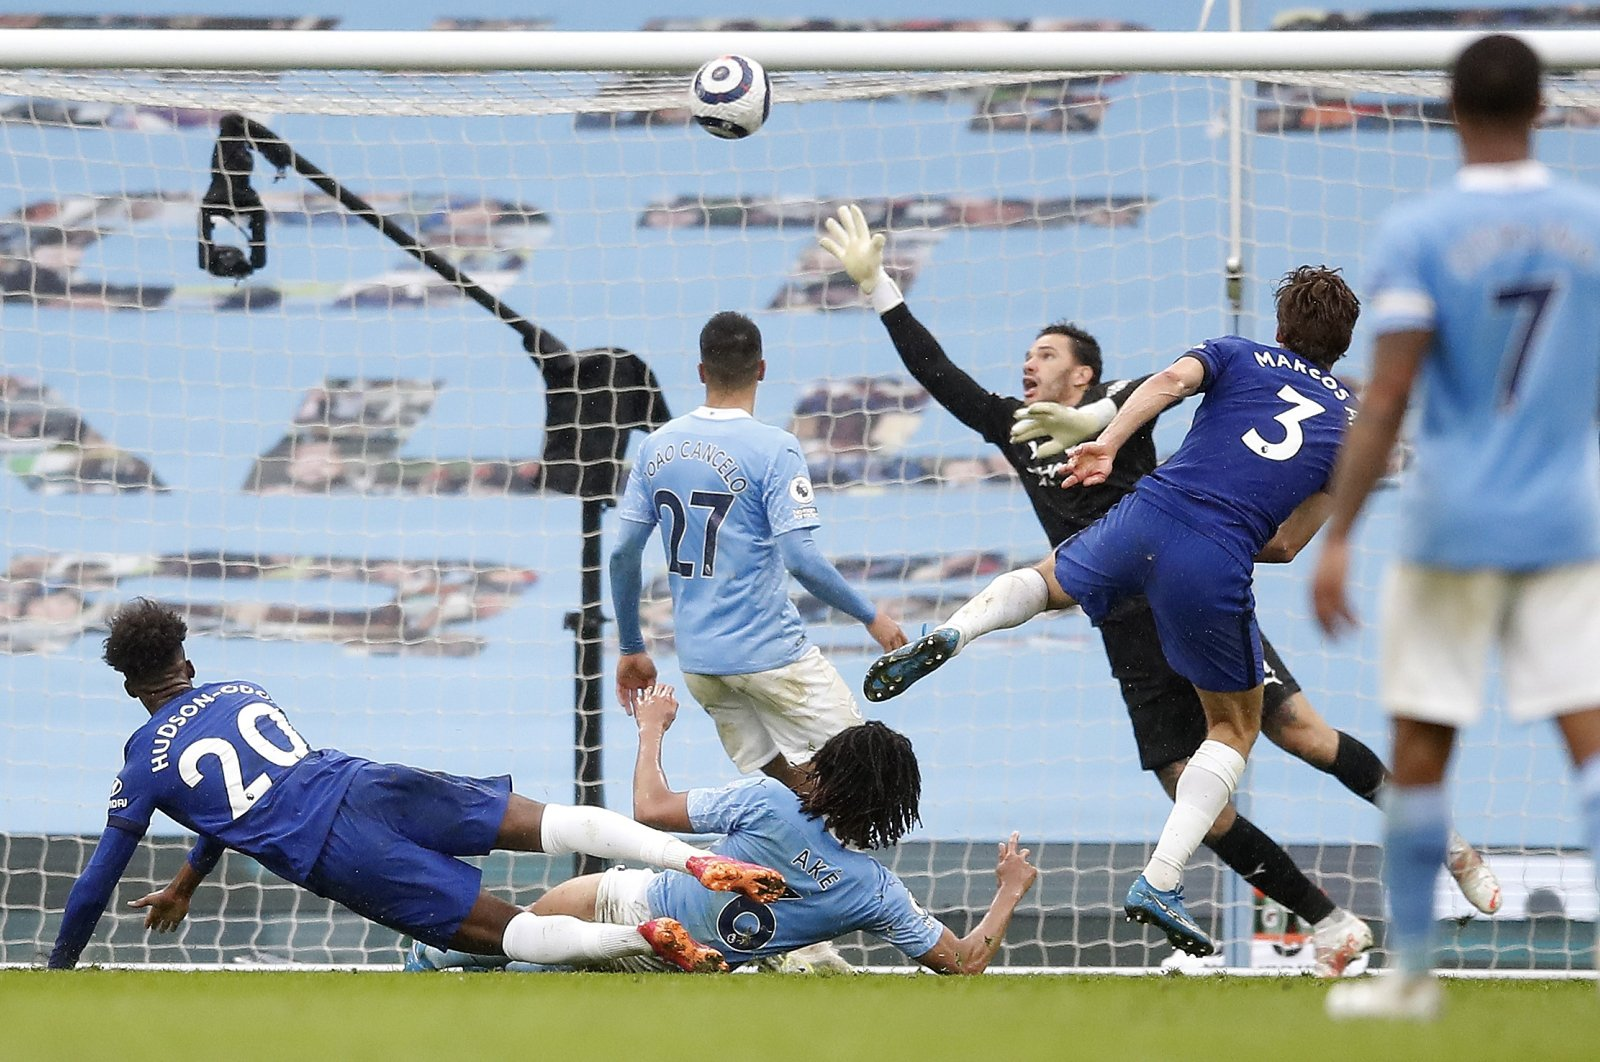 Chelsea's Marcos Alonso scores the winning goal during the English Premier League football match between Manchester City and Chelsea at the Etihad Stadium in Manchester, May 8, 2021.(Pool via AP)